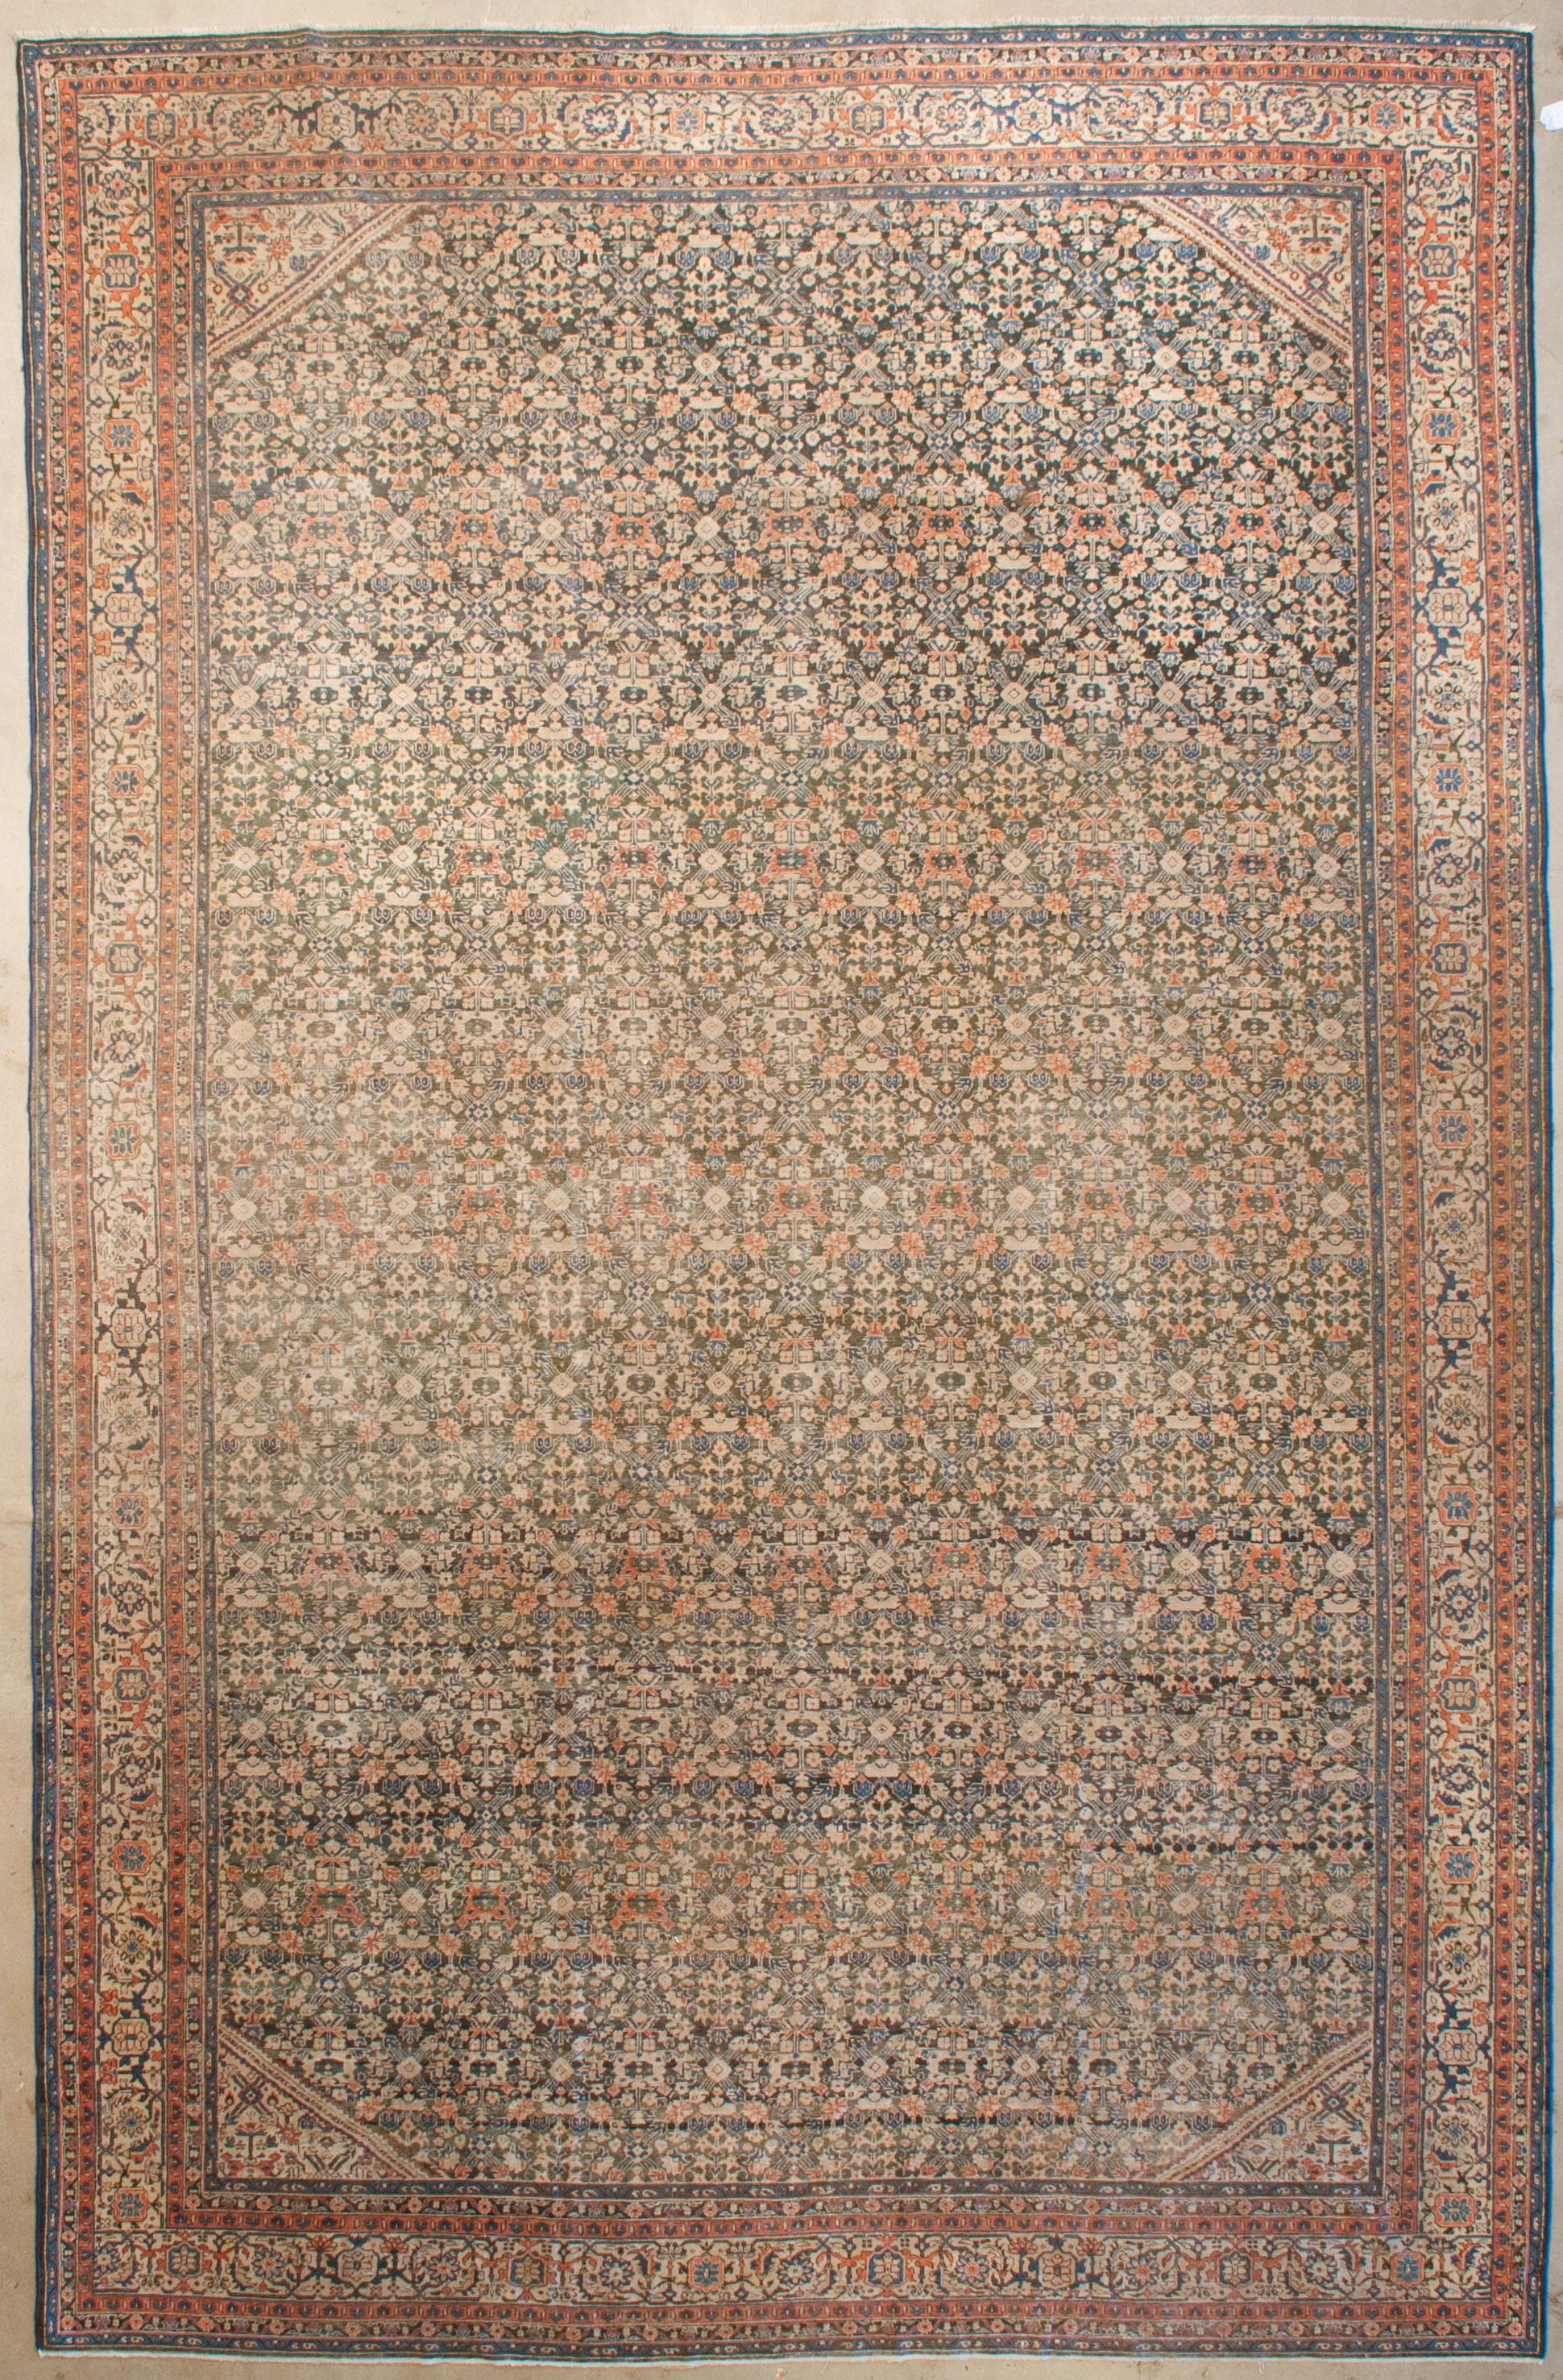 Finest Antique Sultanabad Rug | Rugs and More | Santa Barbara Design 1